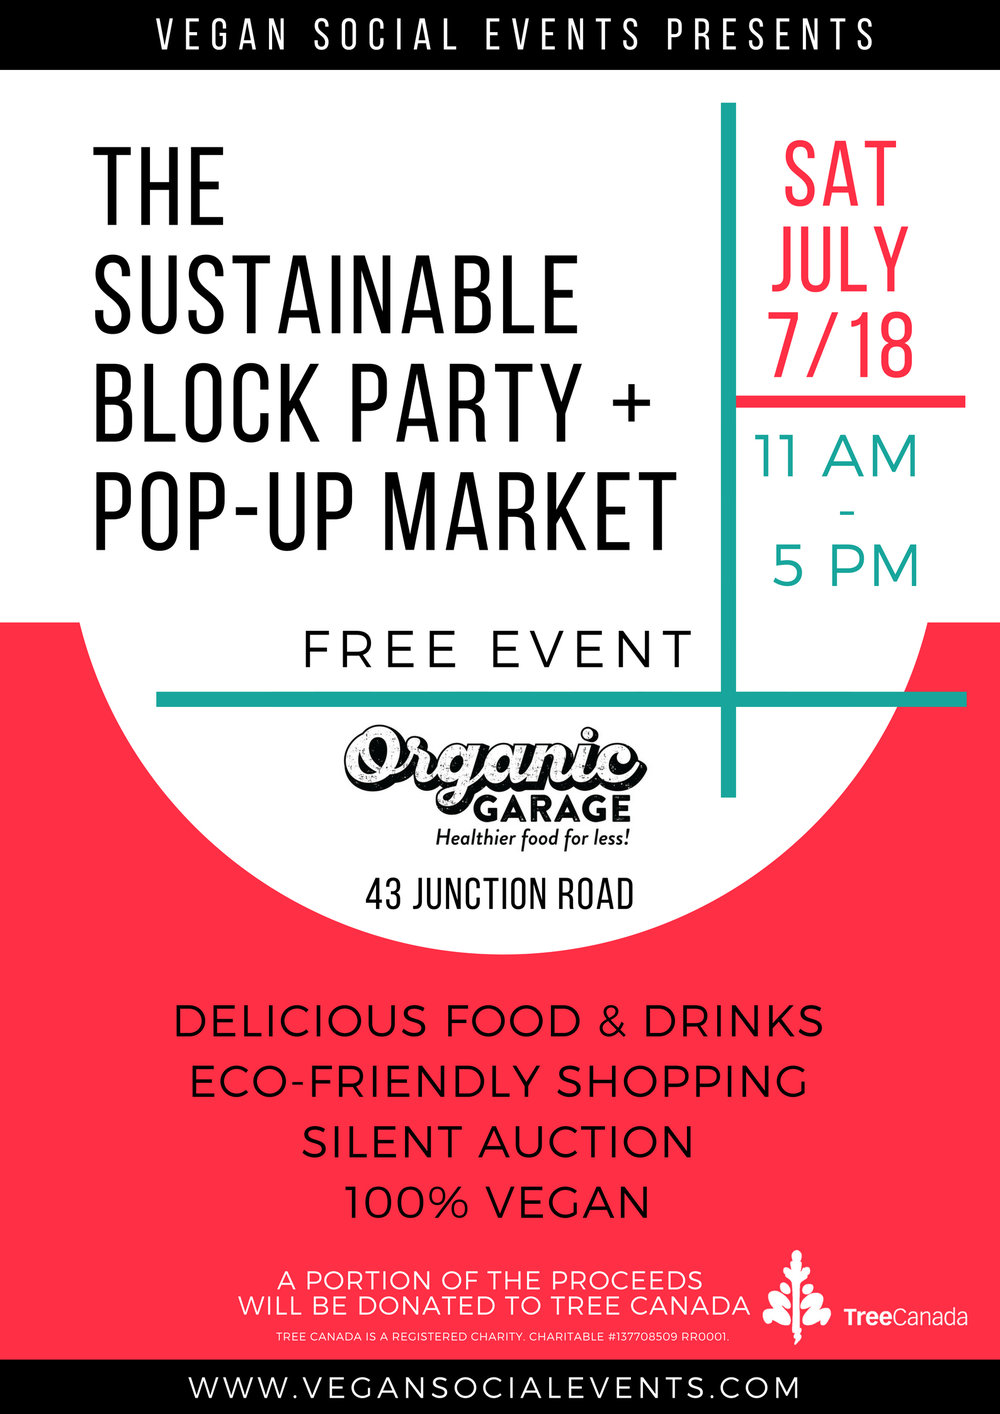 FLYER - THE SUSTAINABLE BLOCK PARTY + POP-UP.jpg